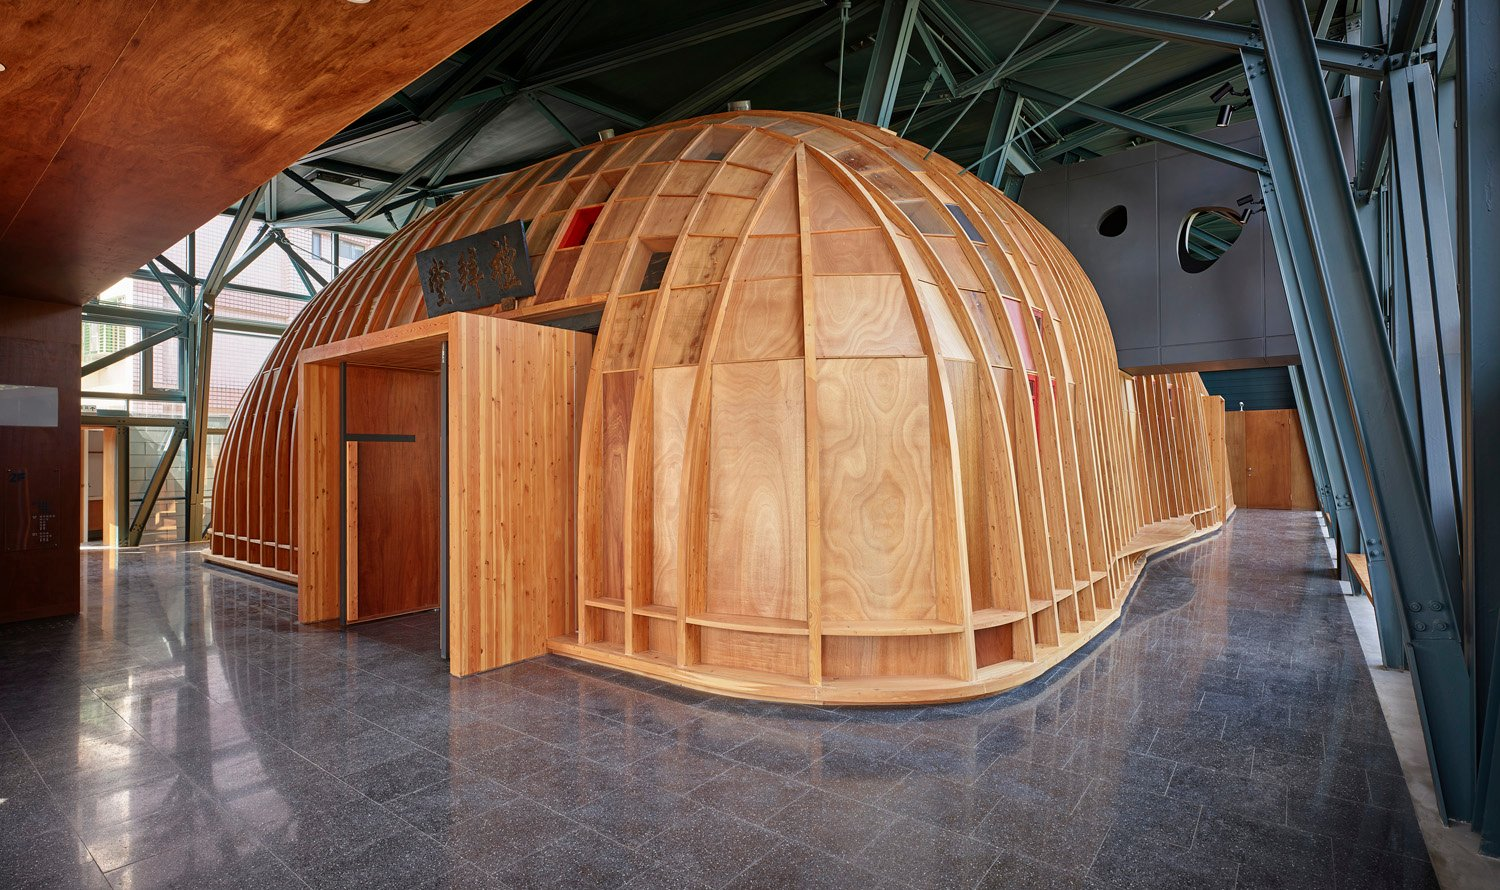 Inside the main hall, we use timber structure to create an egg shaped space symbolizing the mother's uterus that gave birth to life. LI,GUO-MIN